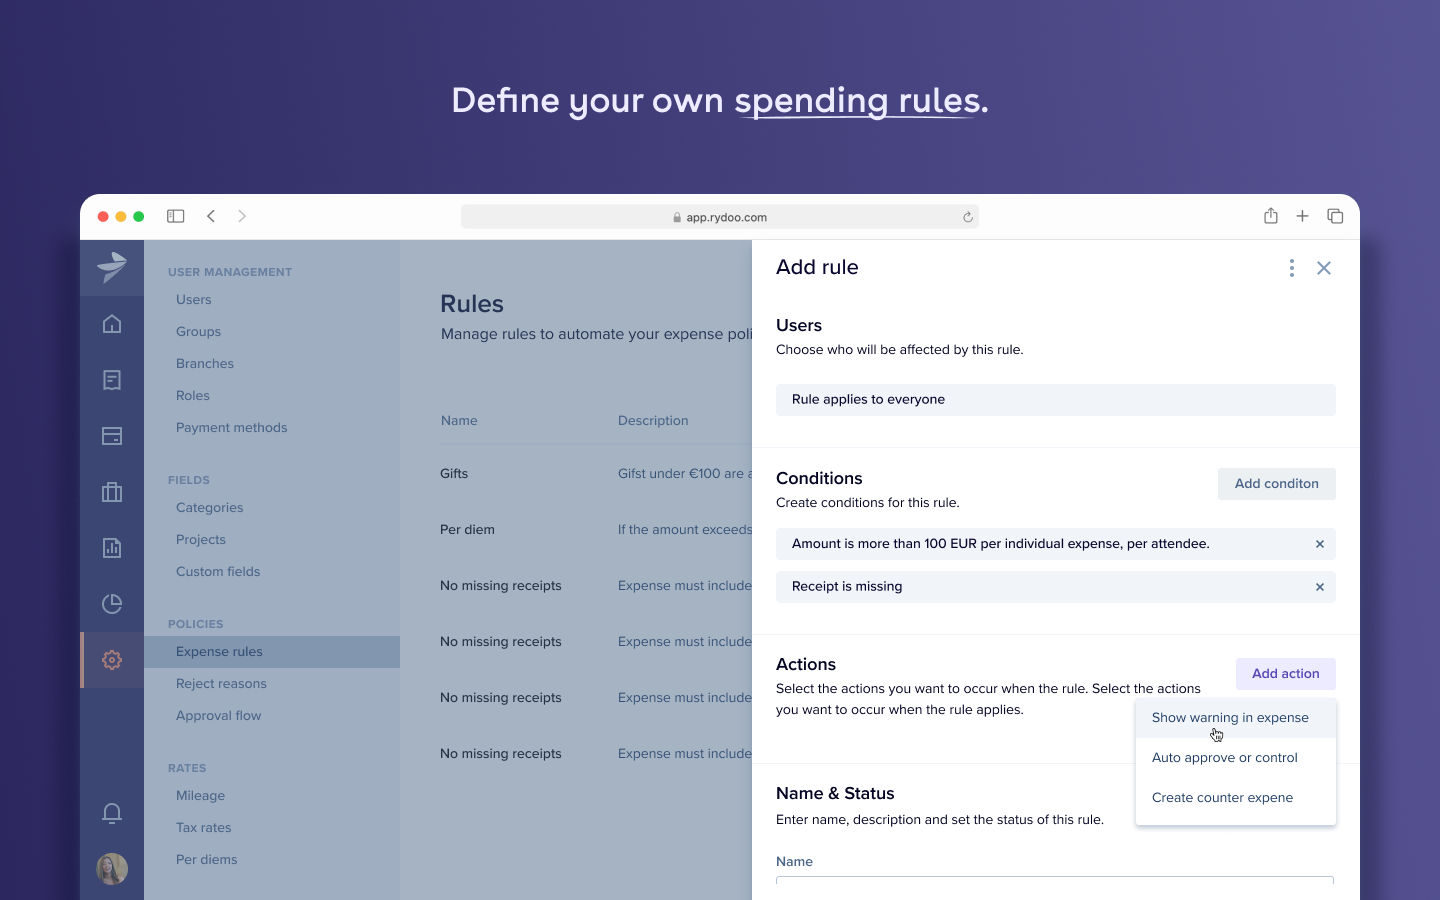 Define your spending rules